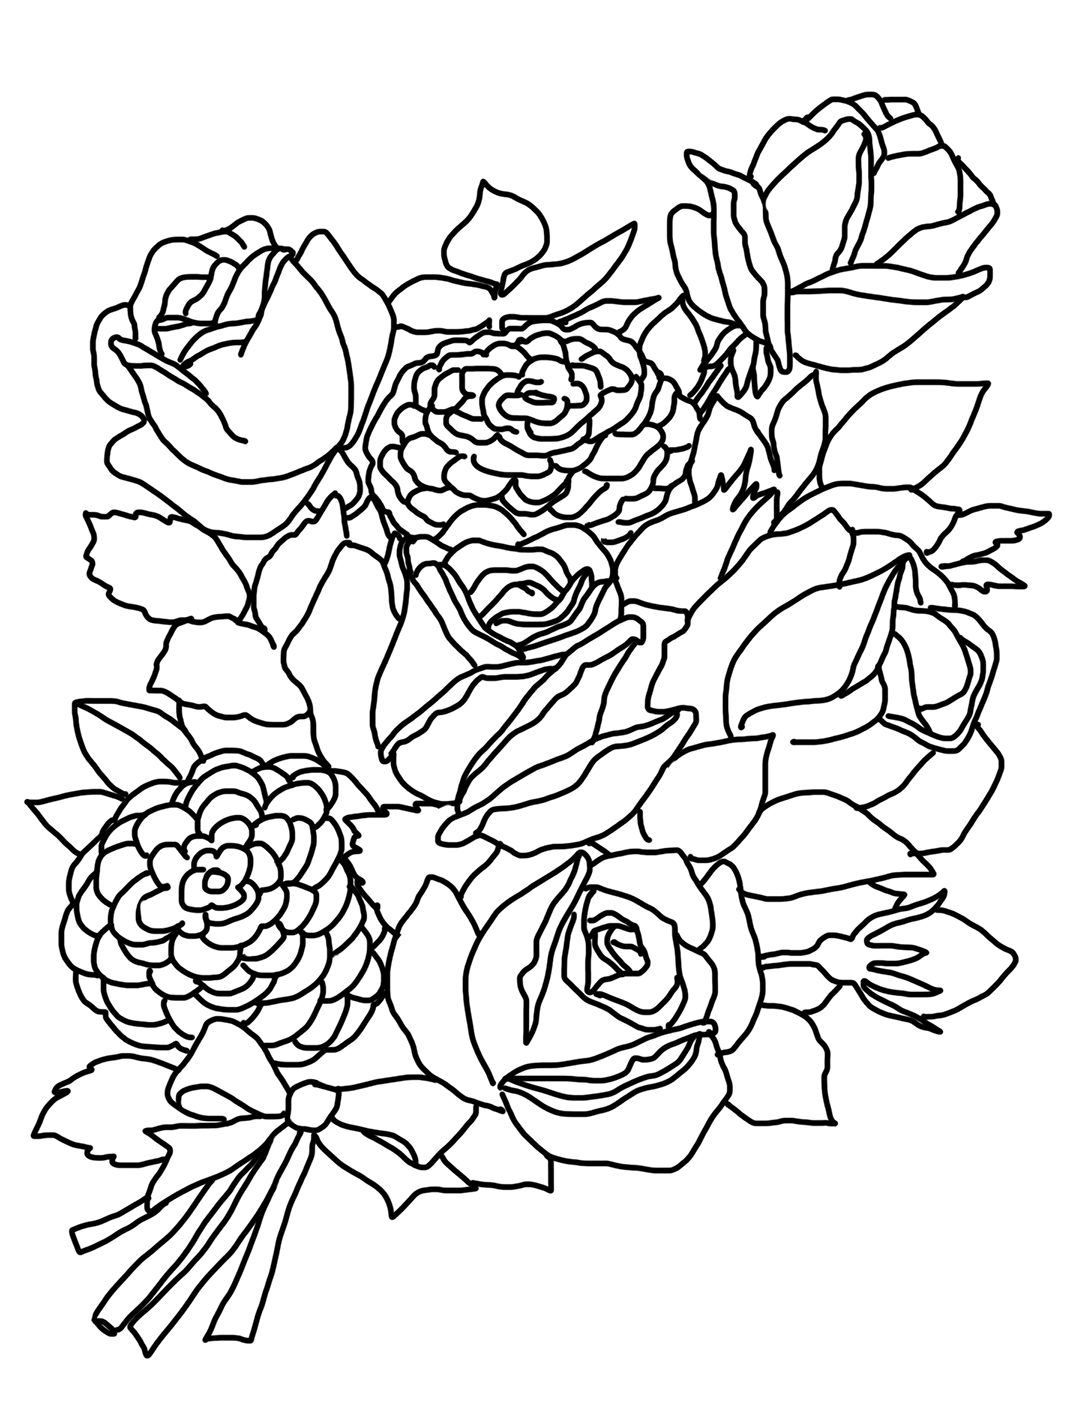 picture of flowers to colour flower coloring pages of to flowers picture colour